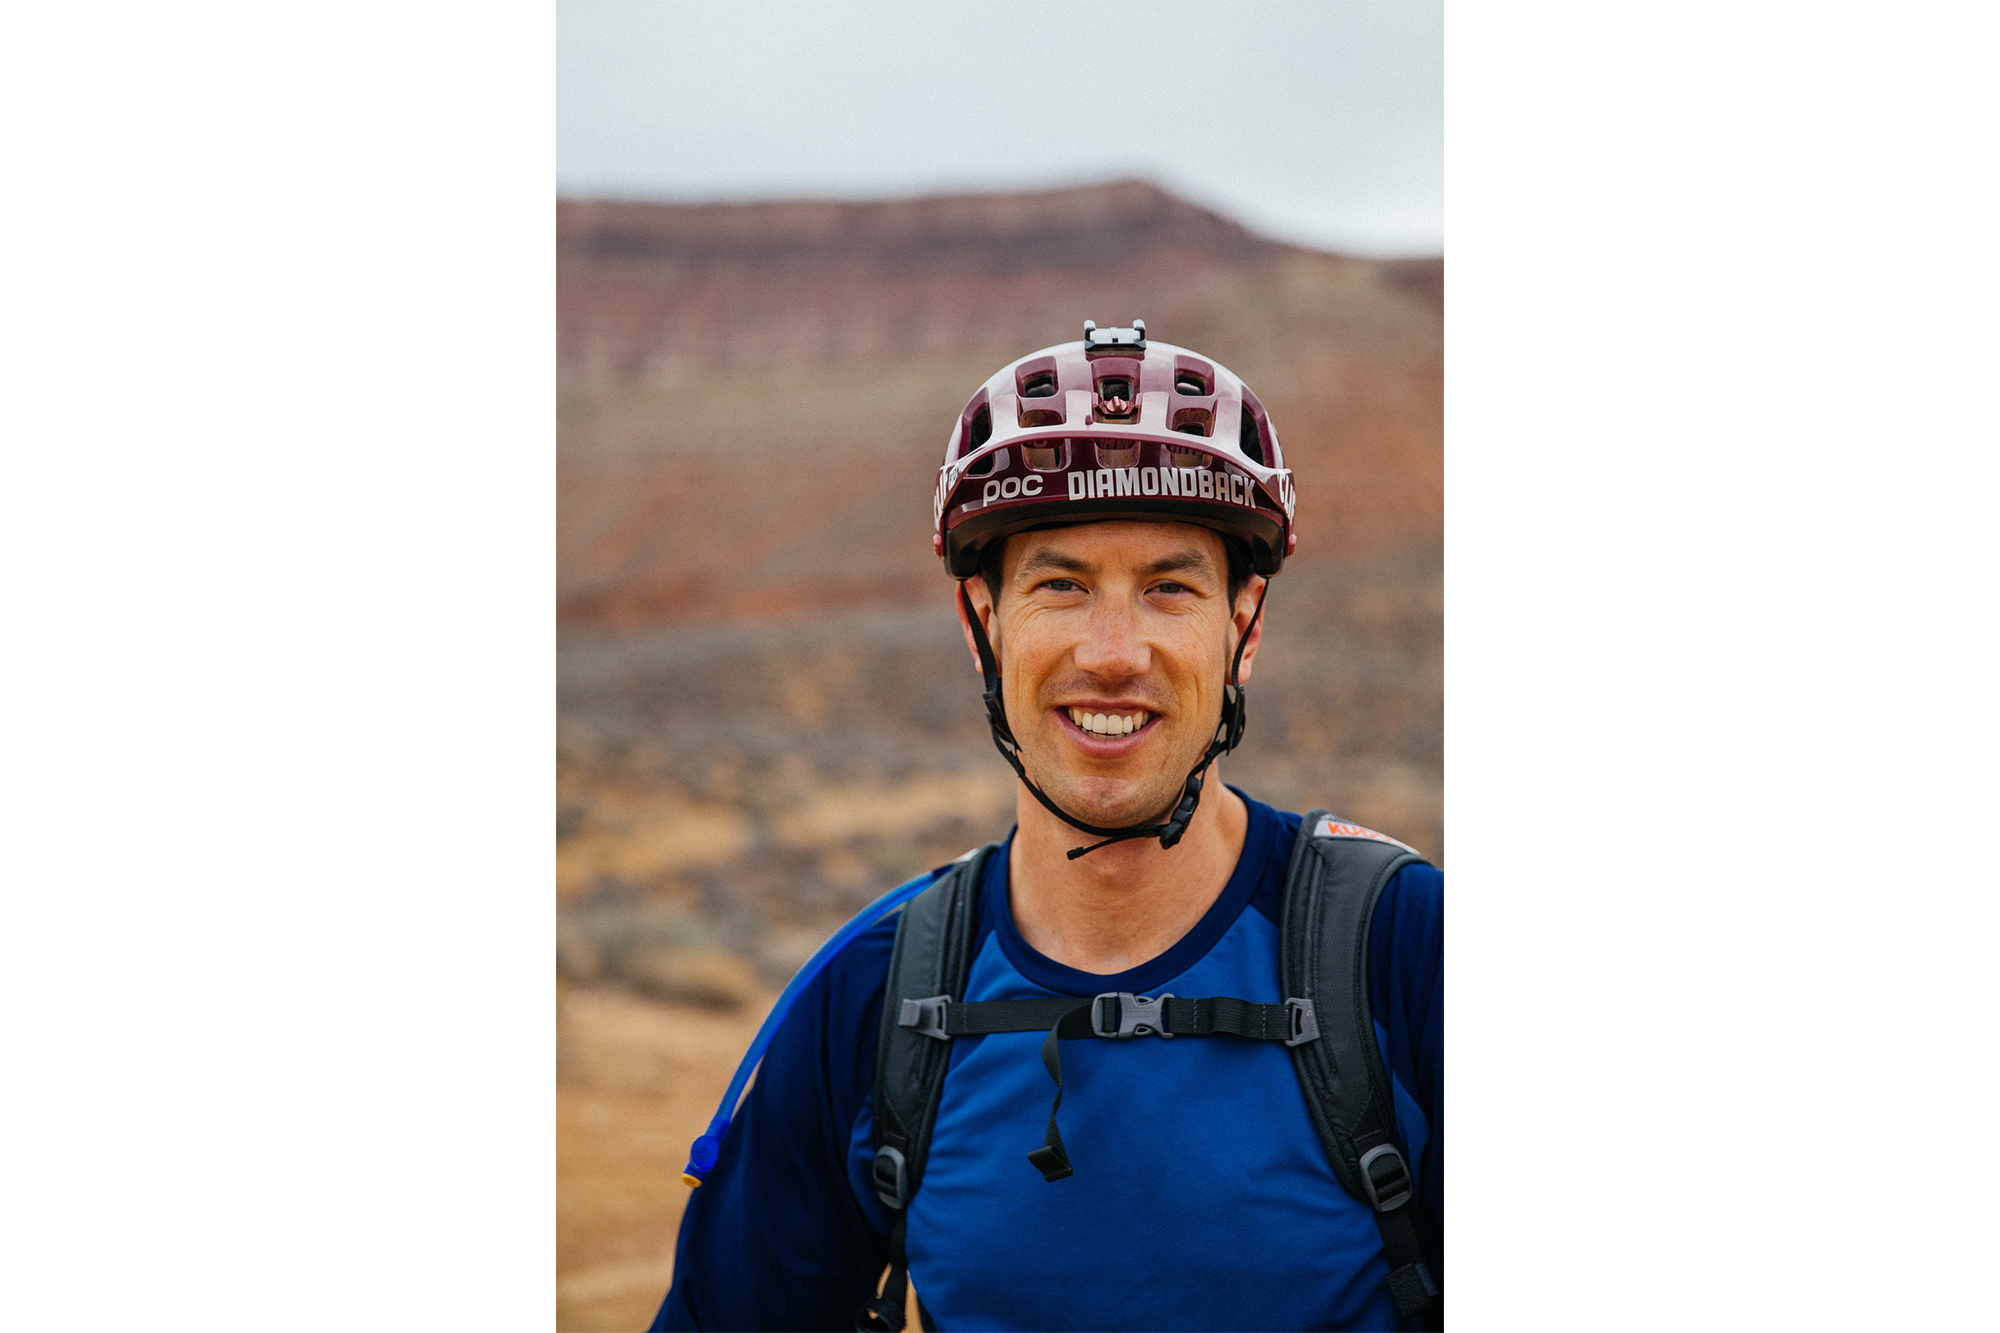 Eric Porter, pro mountain bike rider and A+ human being.